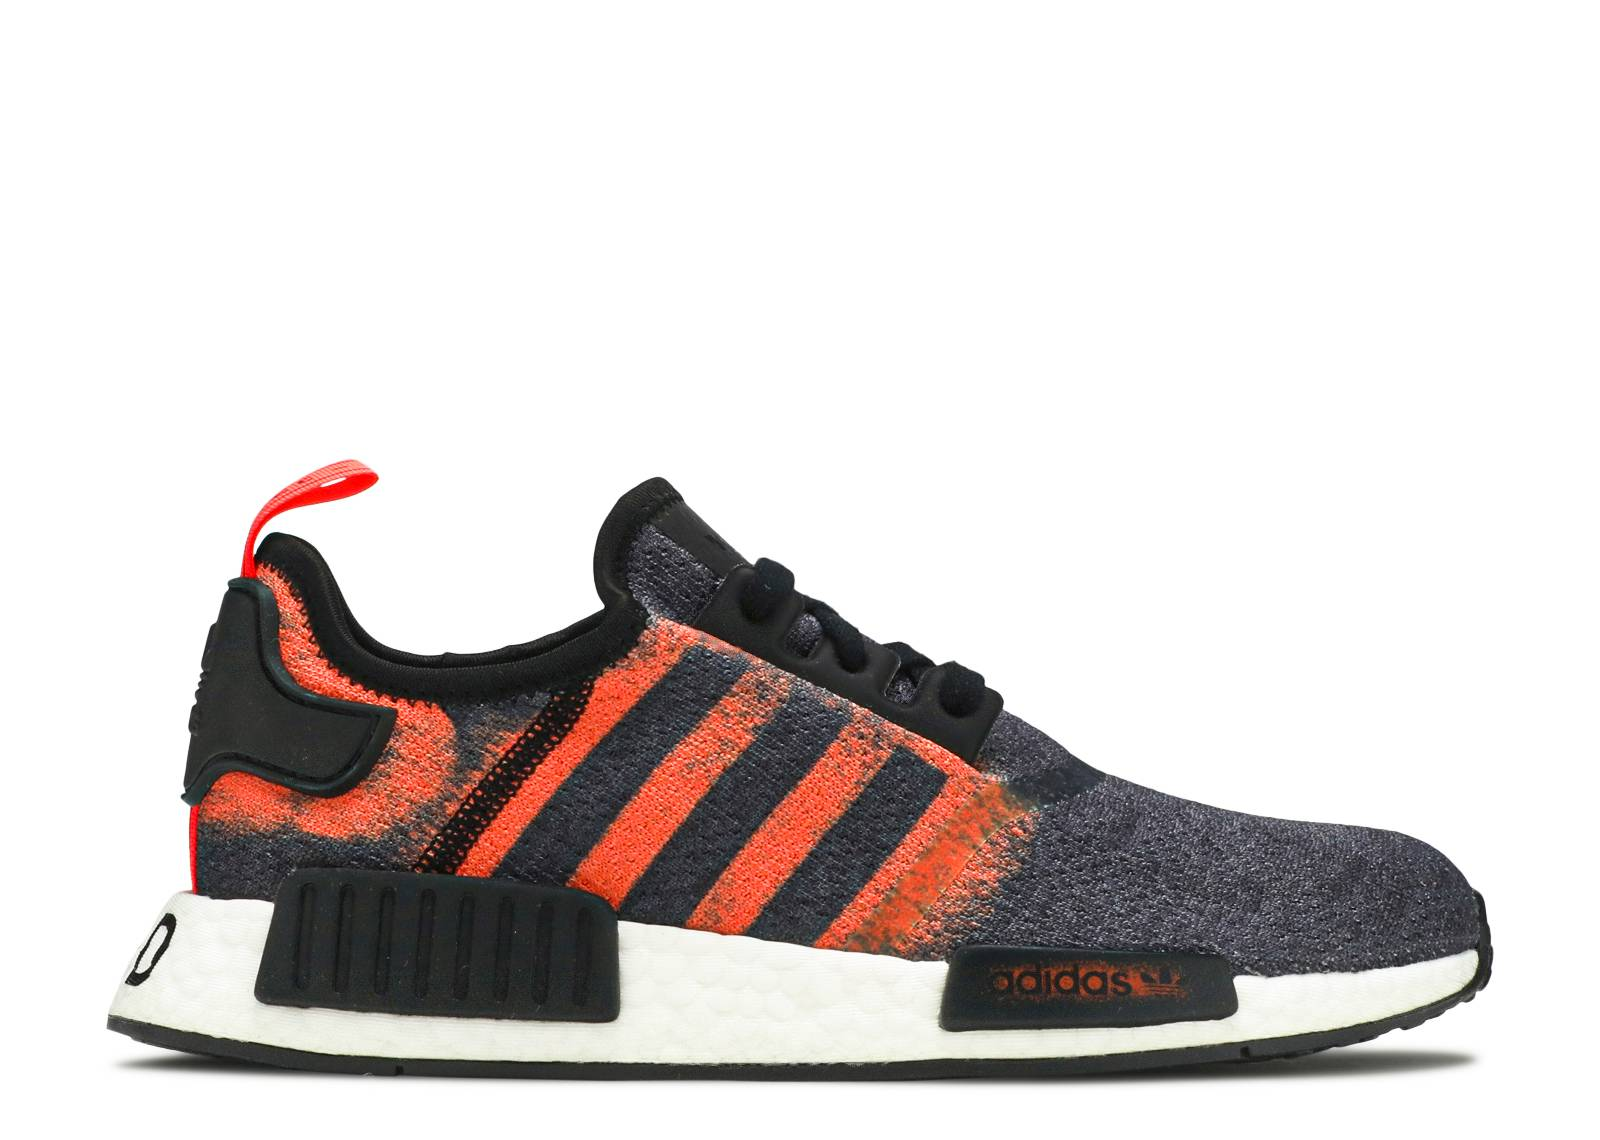 19b04d63ba53b Adidas NMD - adidas Originals Men s   Women s Shoes